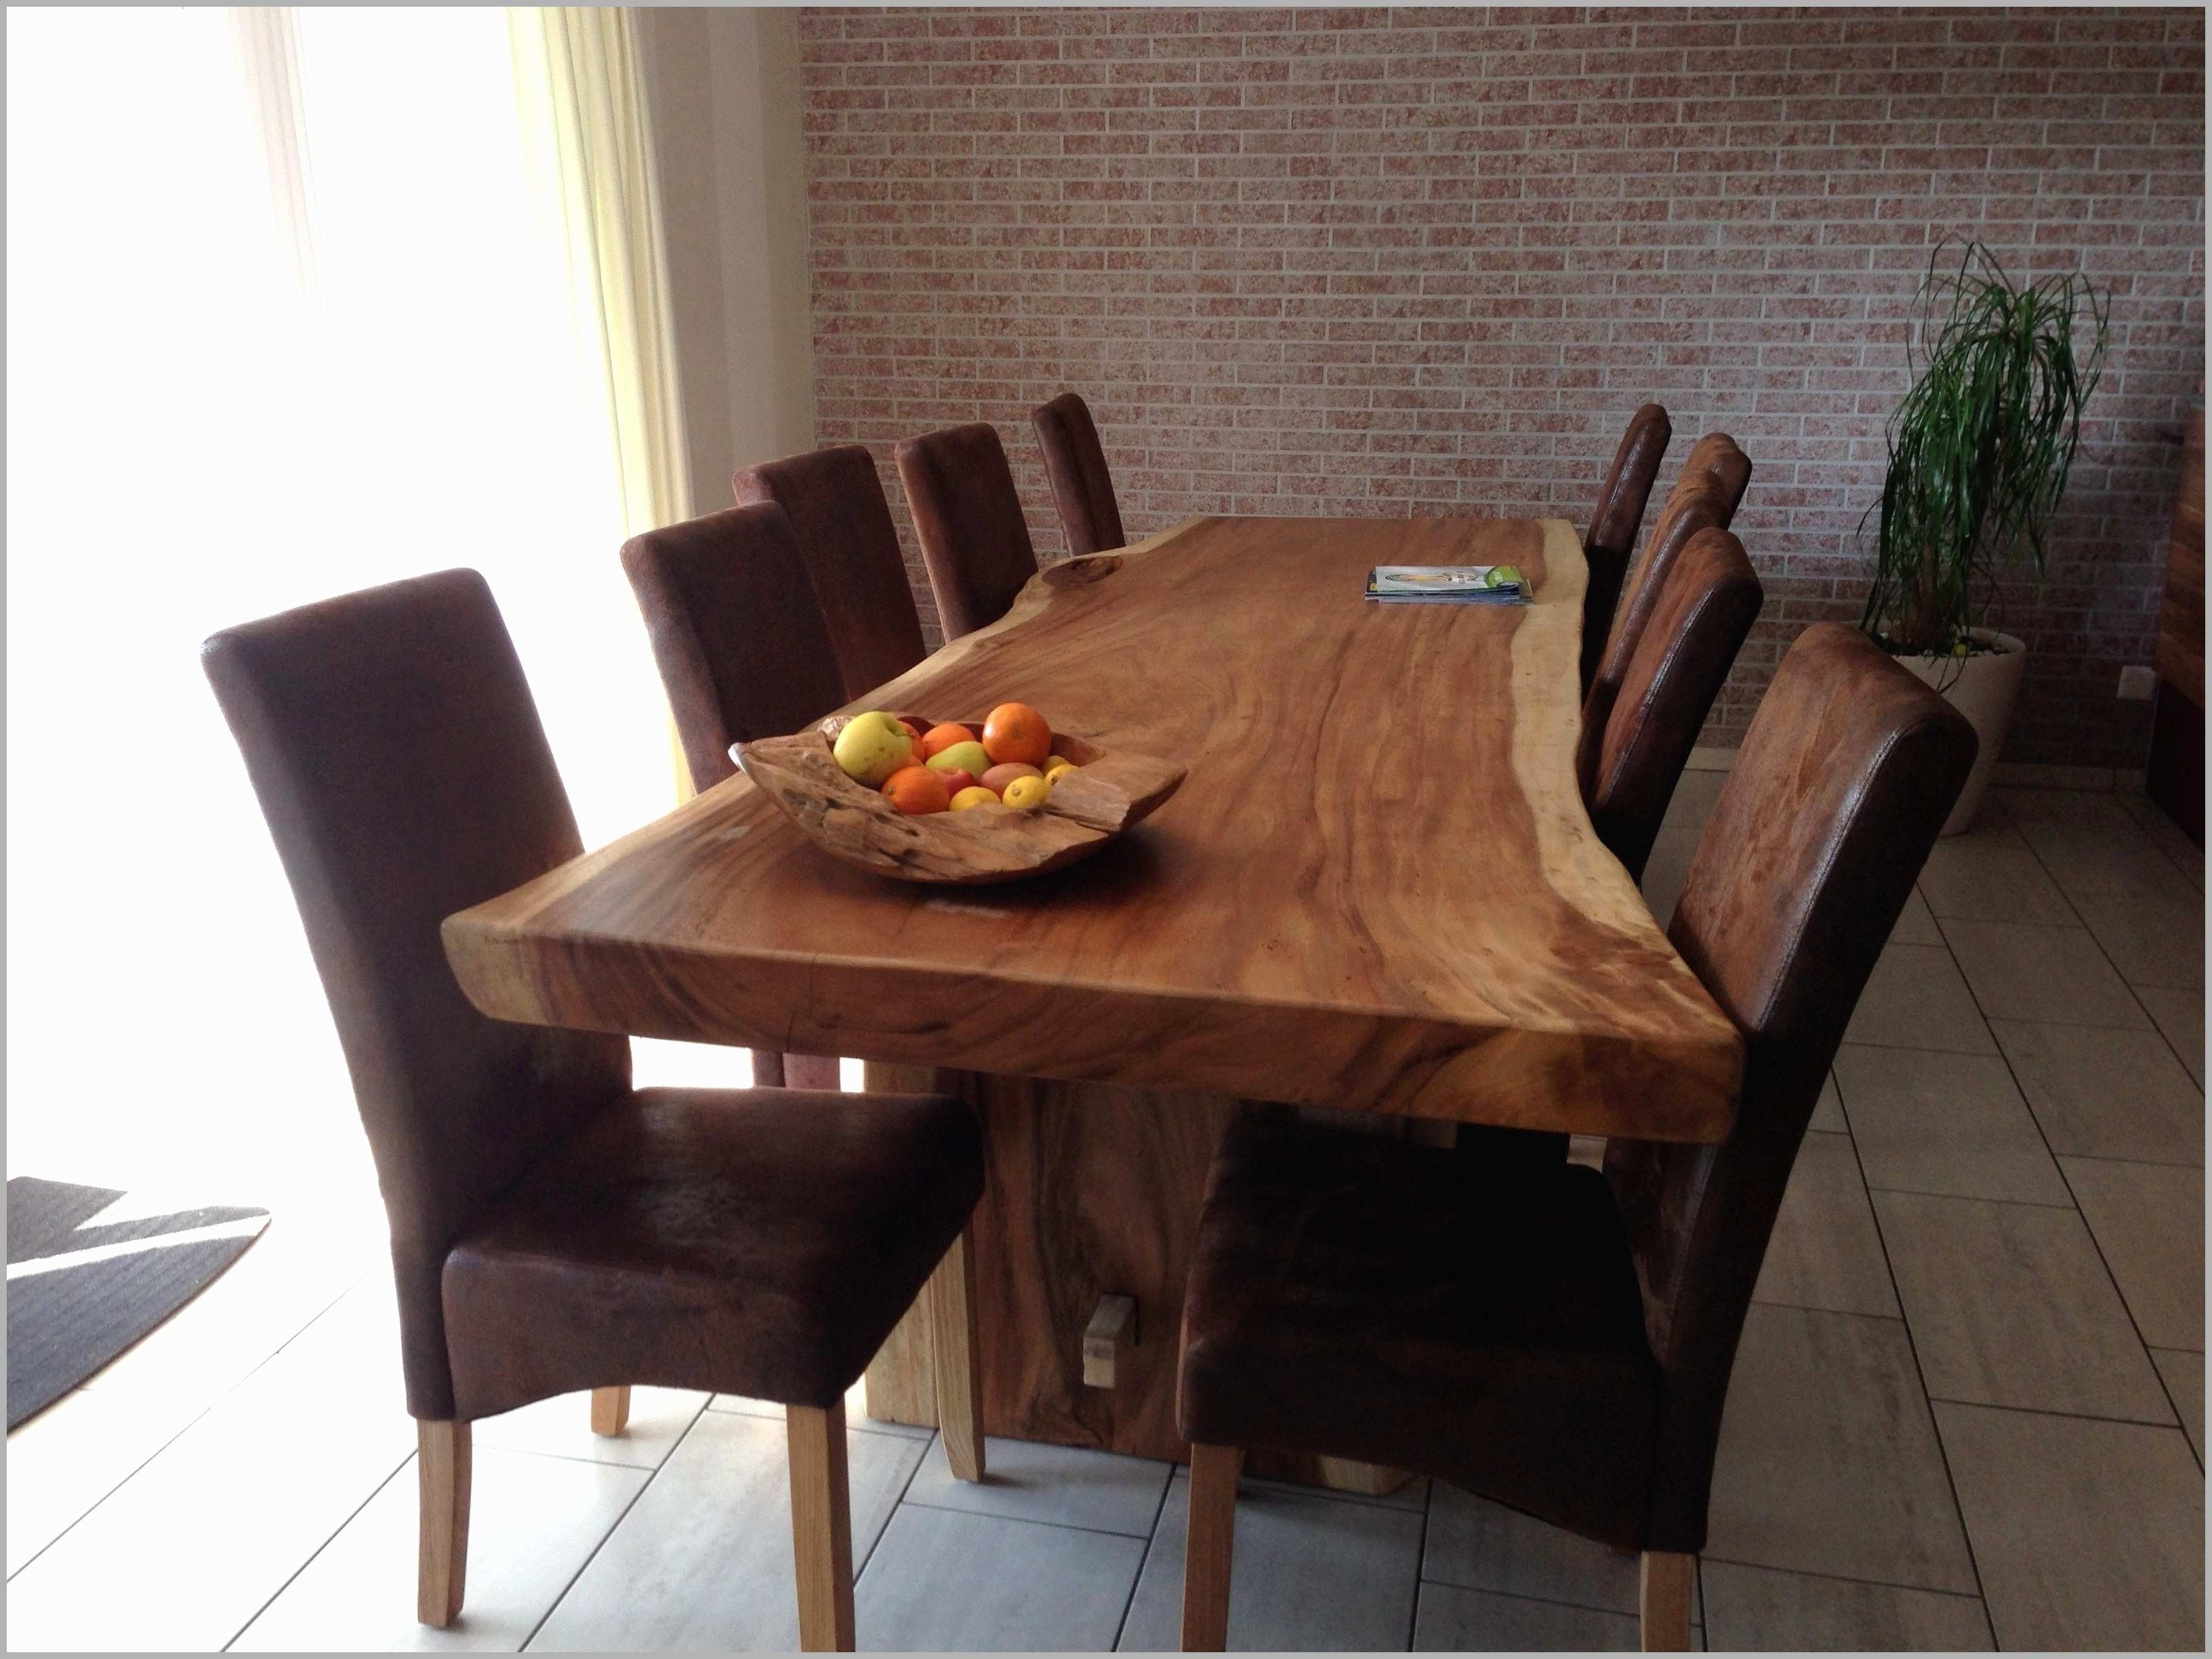 Cheap 6 Seater Dining Table And Chairs Fresh 20 Inspirational Wooden Pertaining To 2018 Cheap 8 Seater Dining Tables (View 24 of 25)